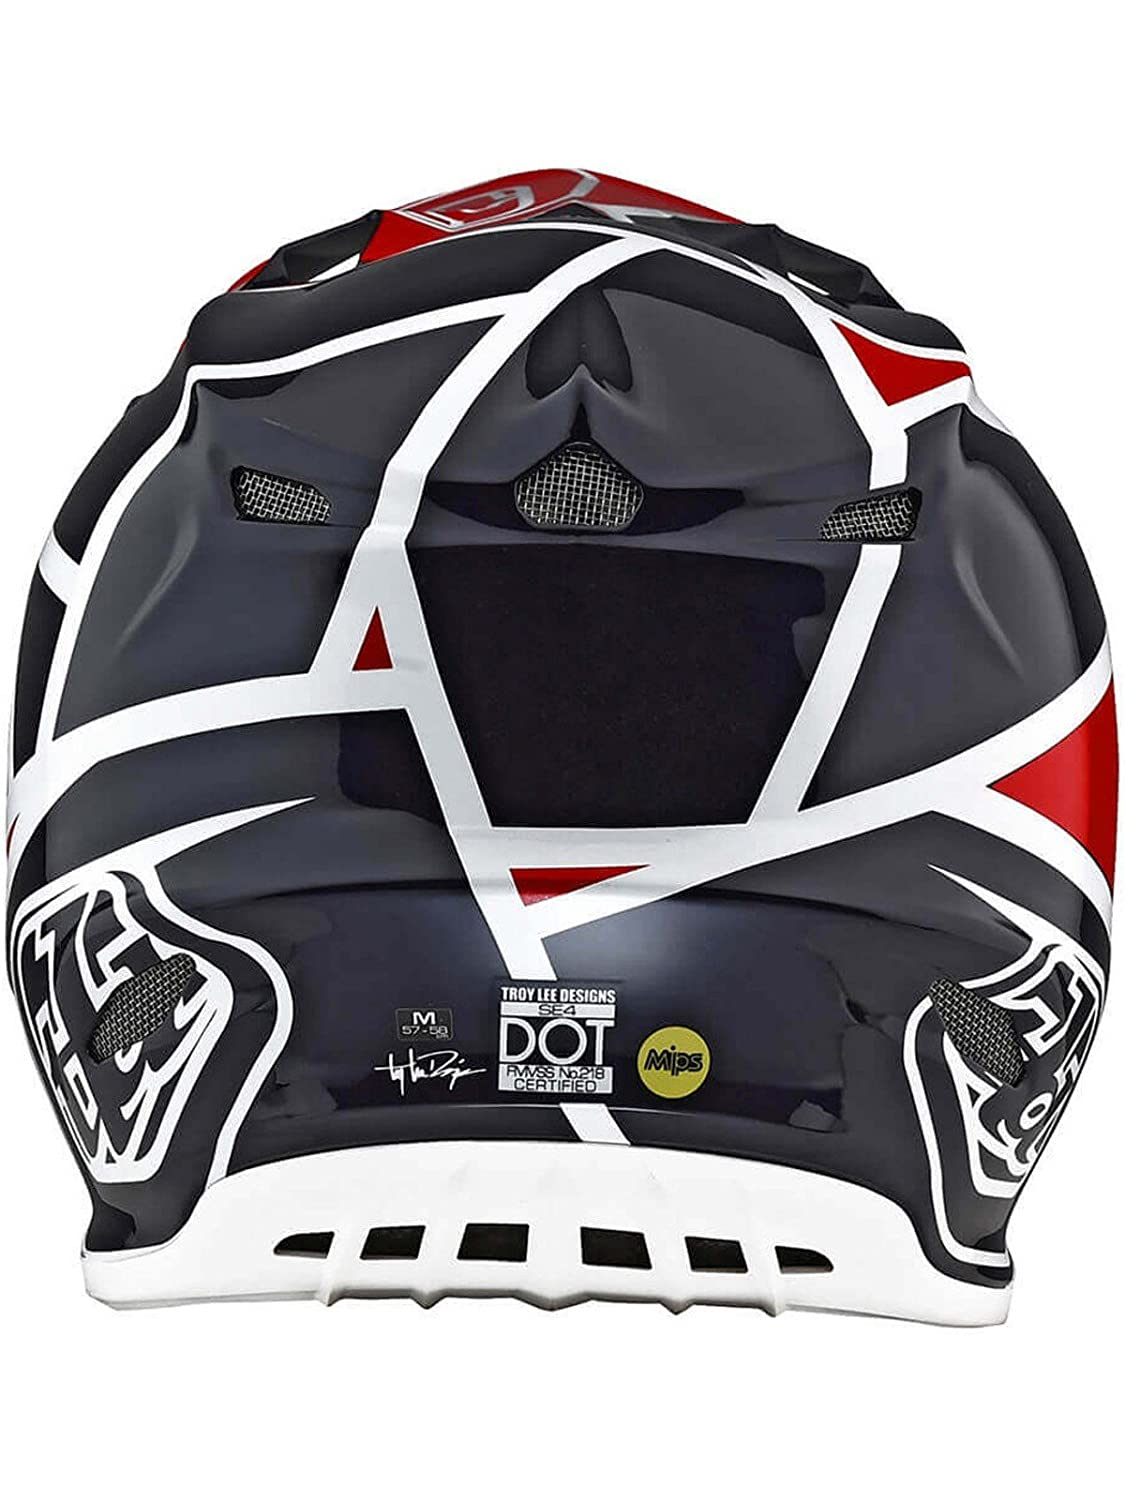 Troy Lee Designs 2018 TLD SE4 18.1 Comp - Casco métrico MX, color rojo y azul marino: Amazon.es: Coche y moto